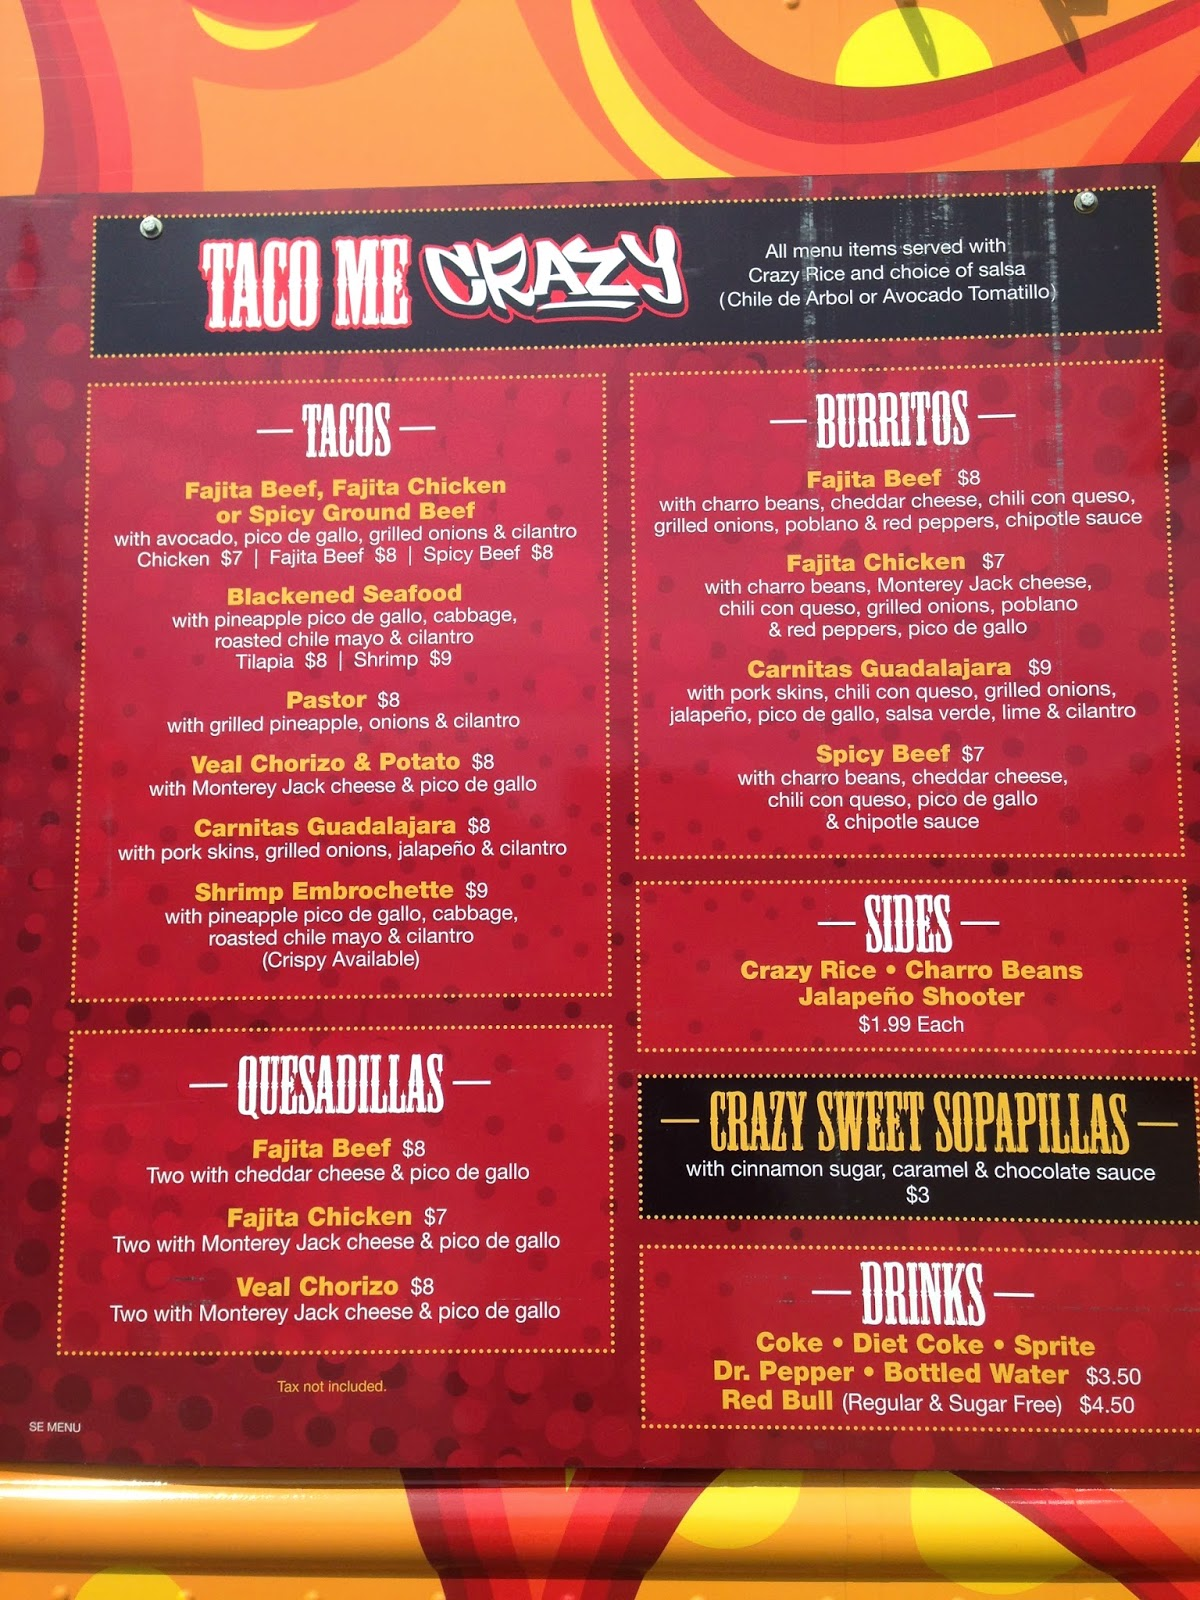 Taco Me Crazy Food Truck Menu